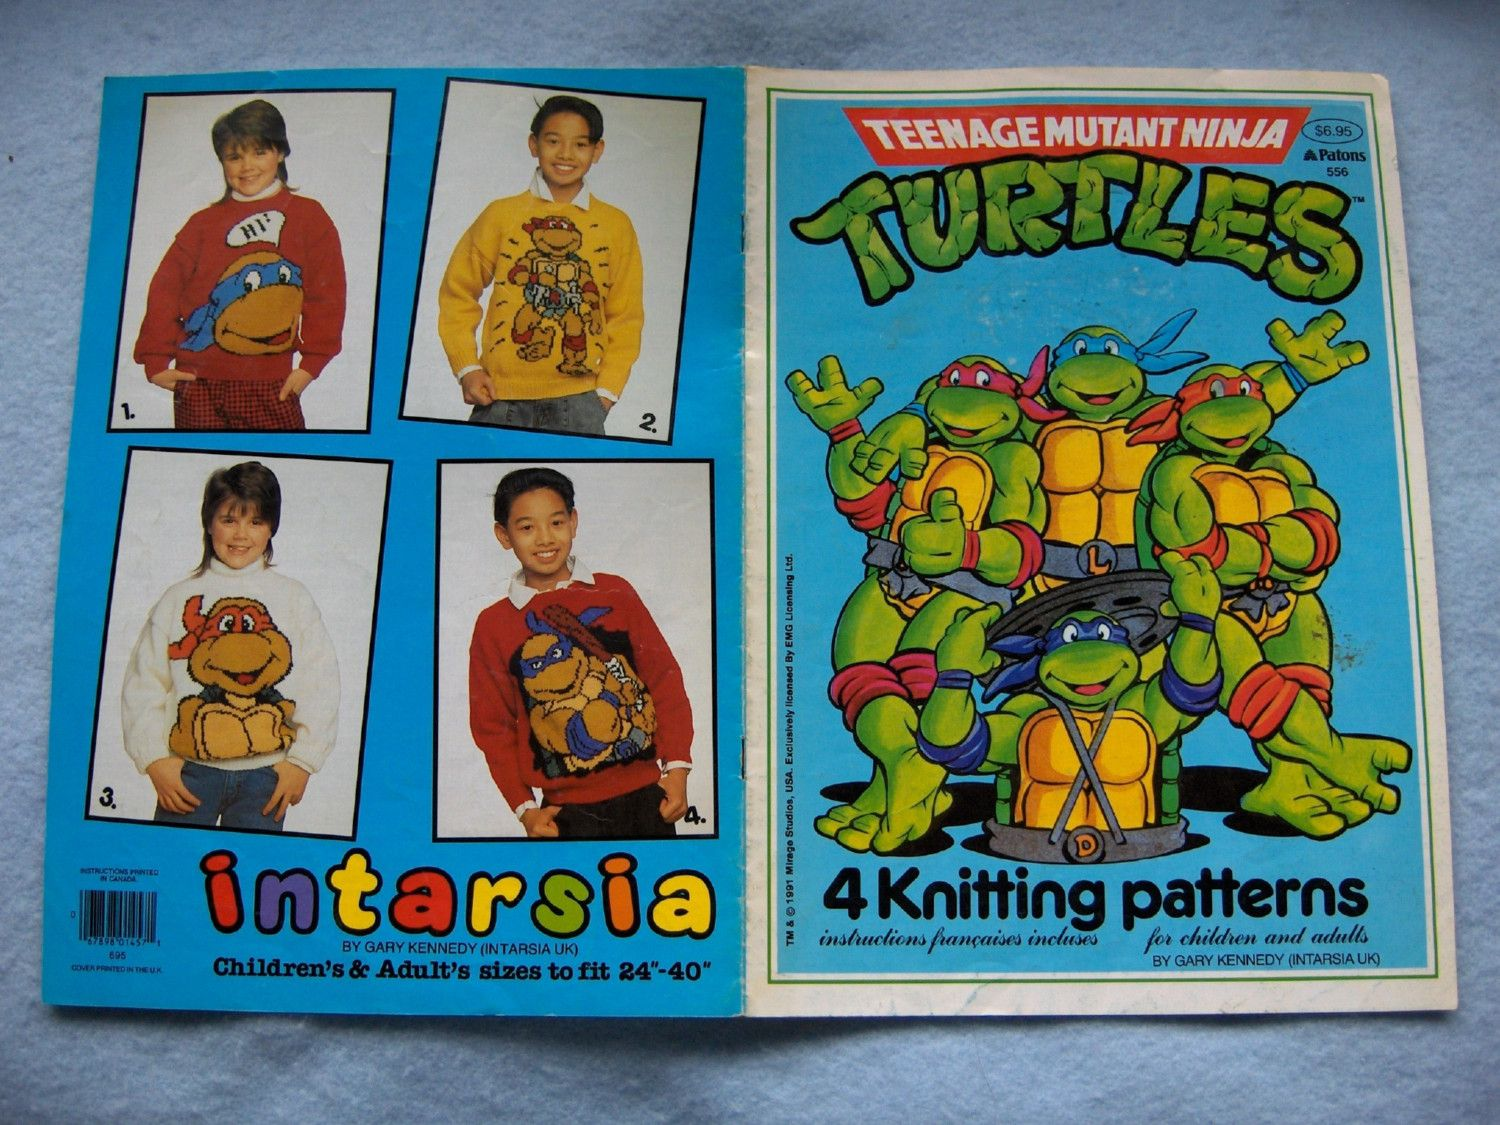 Intarsia knitting patterns 1991 teenage mutant ninja turtles ...